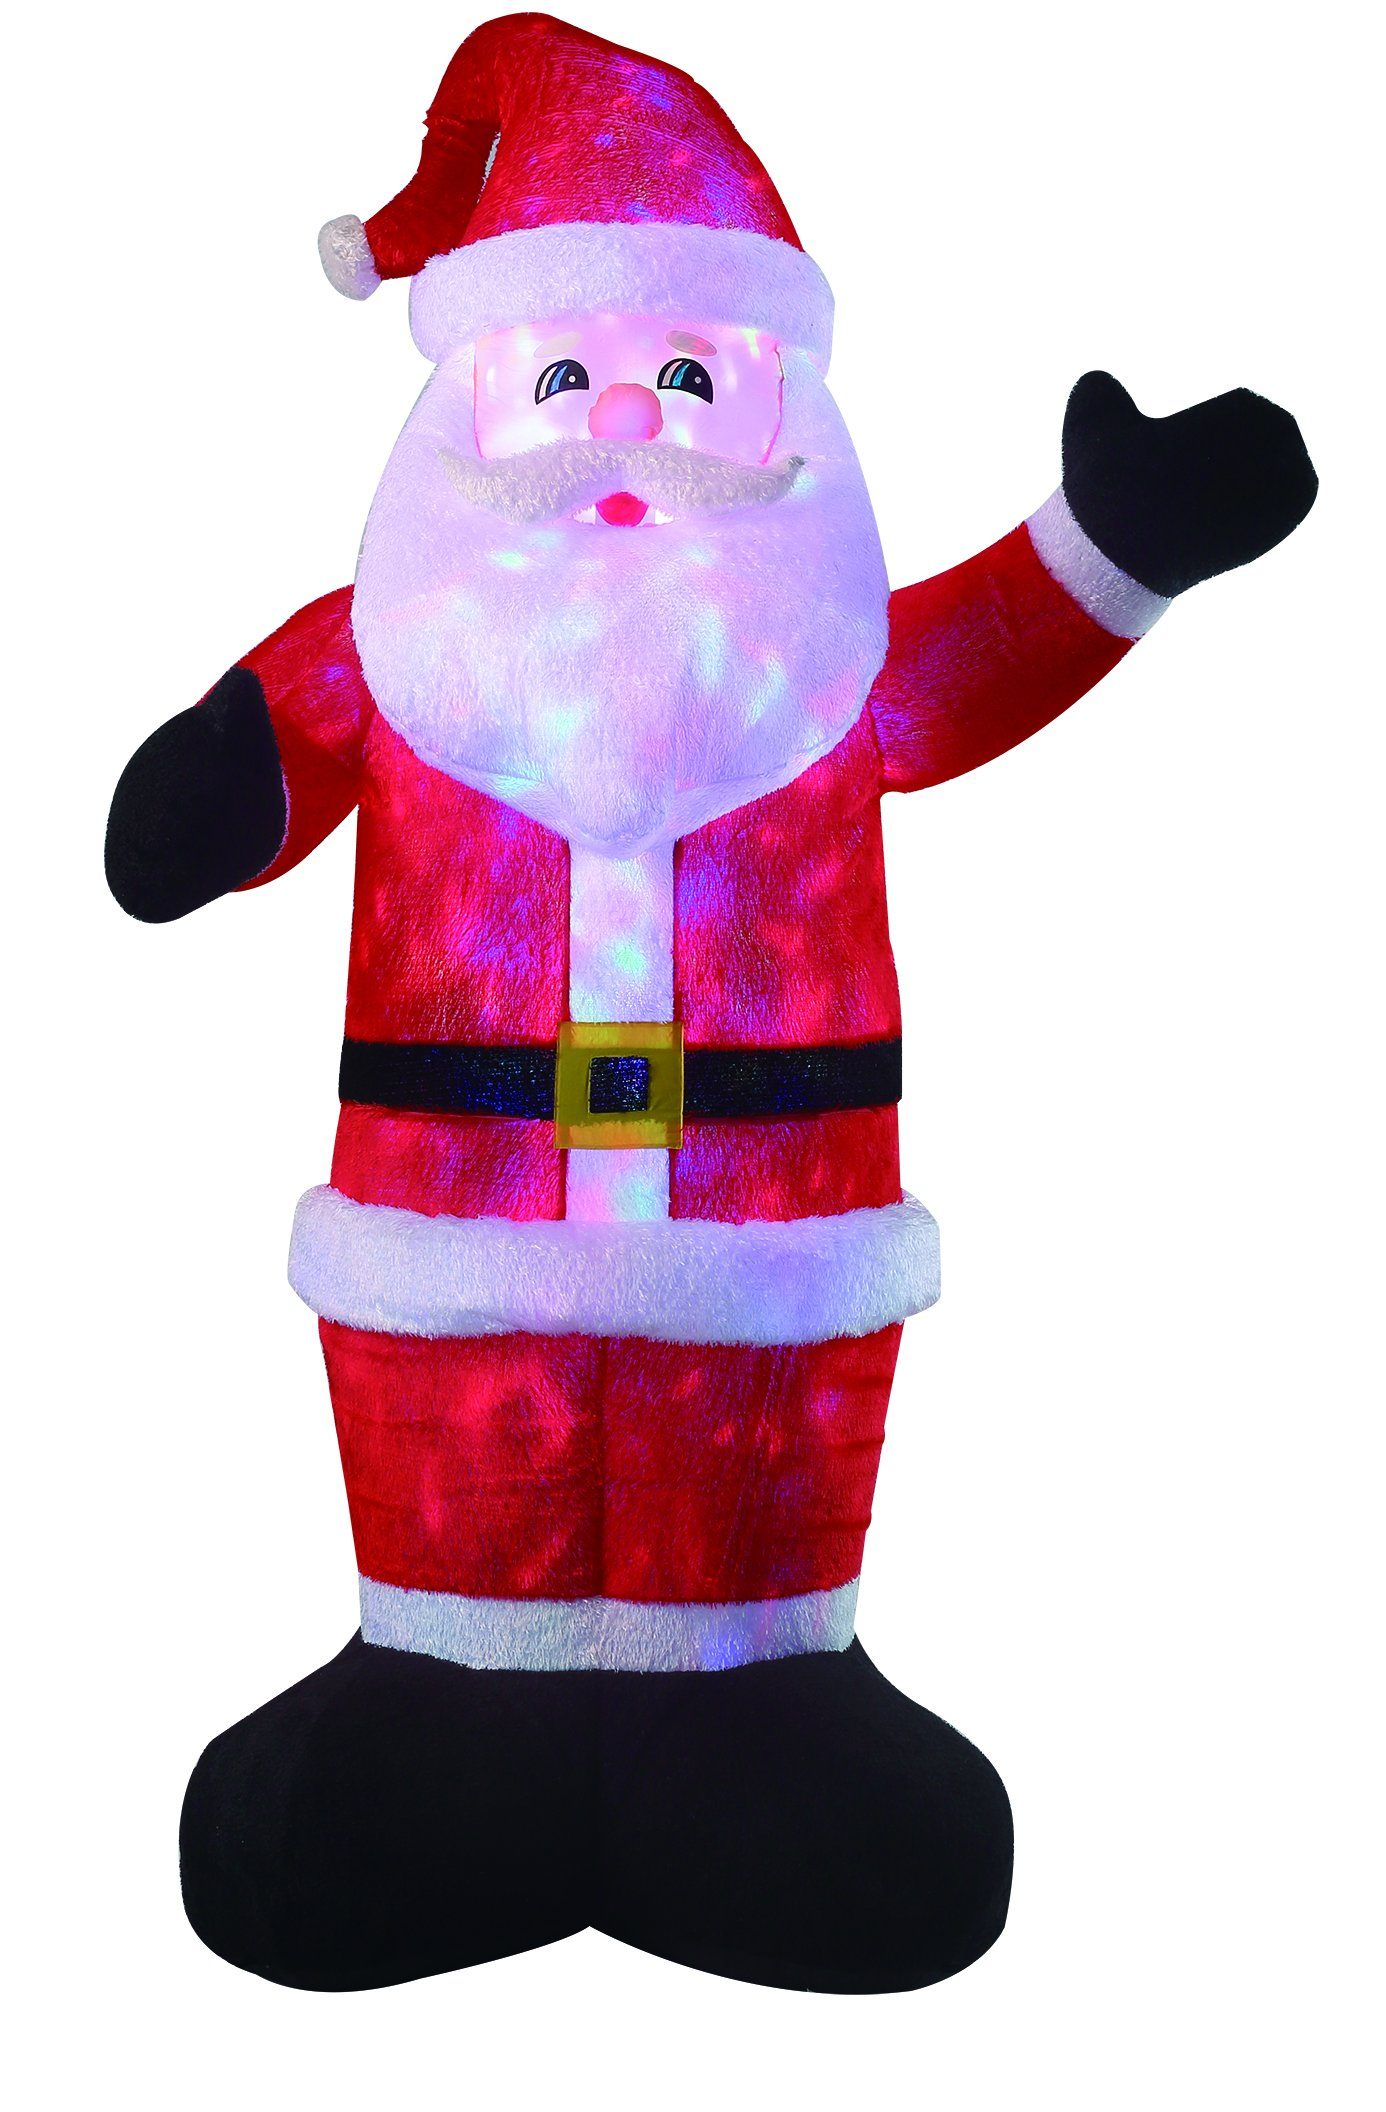 VIDAMORE 8 Foot Large Inflatable X-Mas Plush Santa LED Lighted Inflatables Outdoor Holiday Yard Lawn Decorations by Vidamore